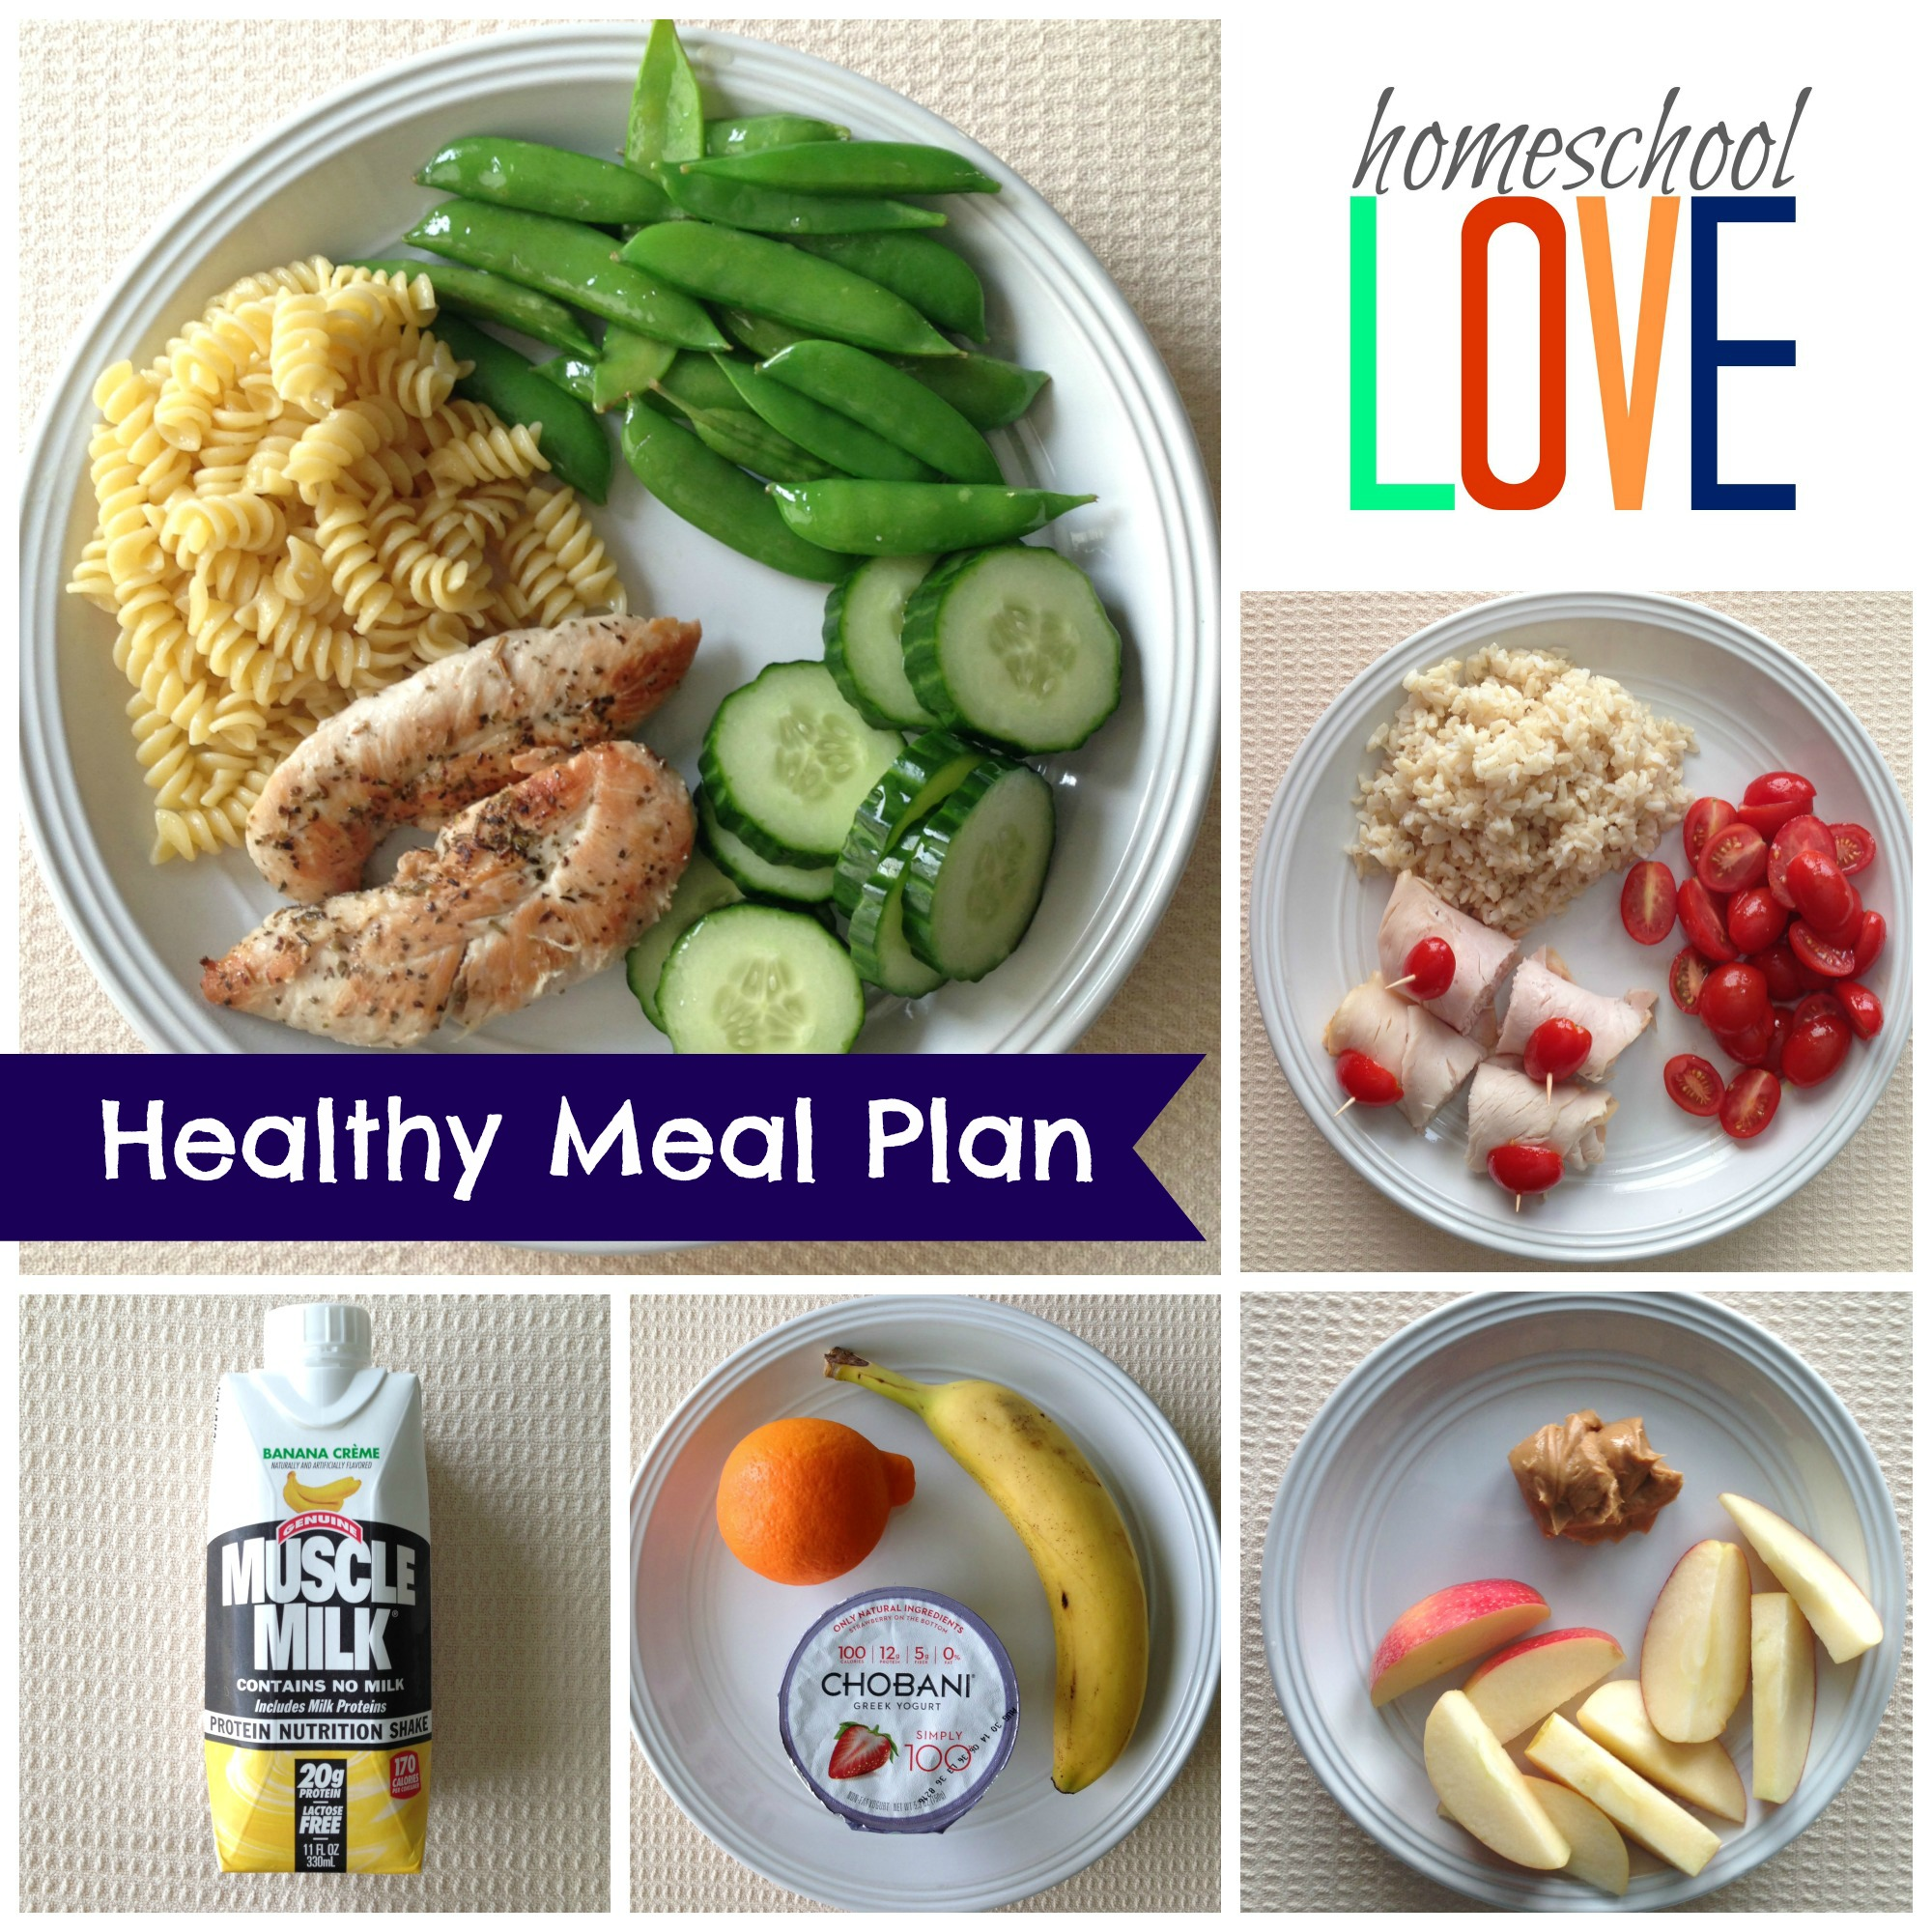 Homeschool love for Healthy home plans